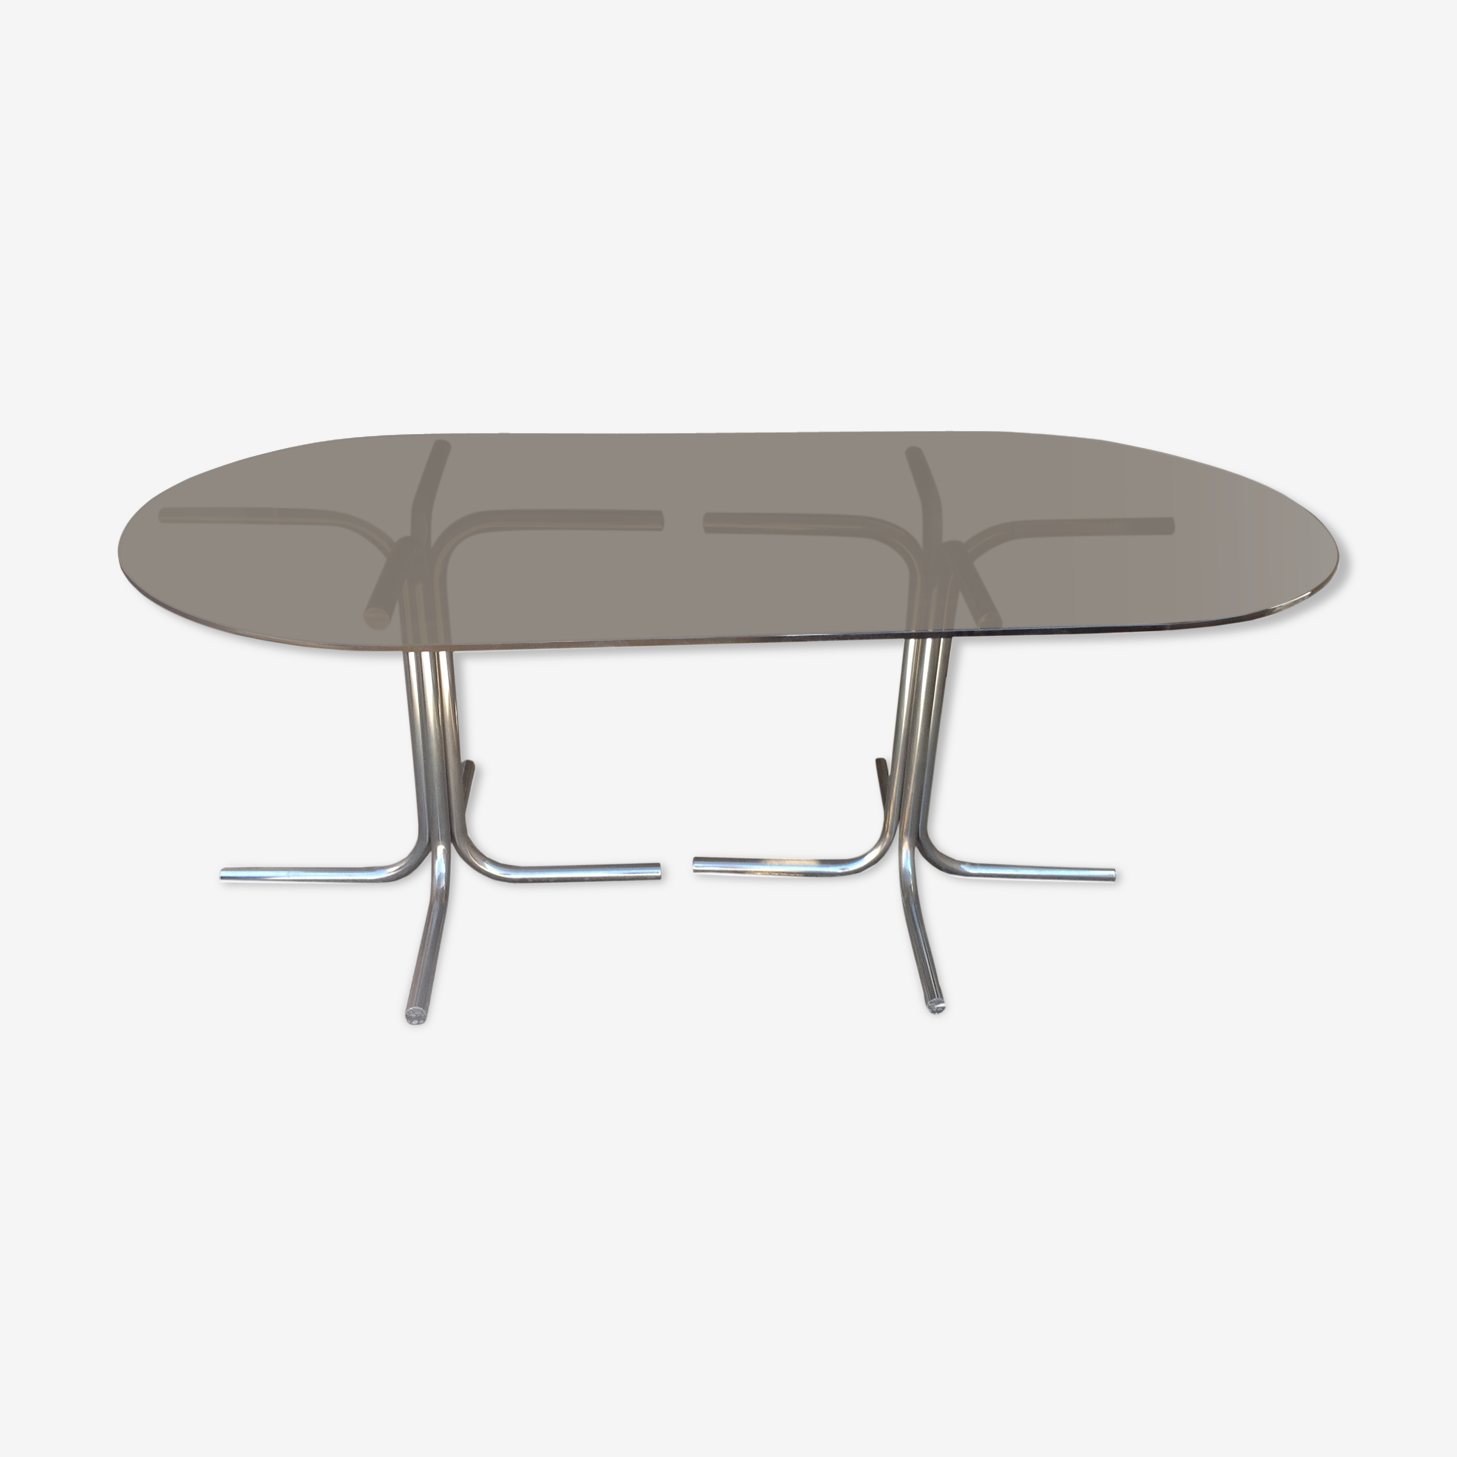 Dining glass table smoking vintage years 70